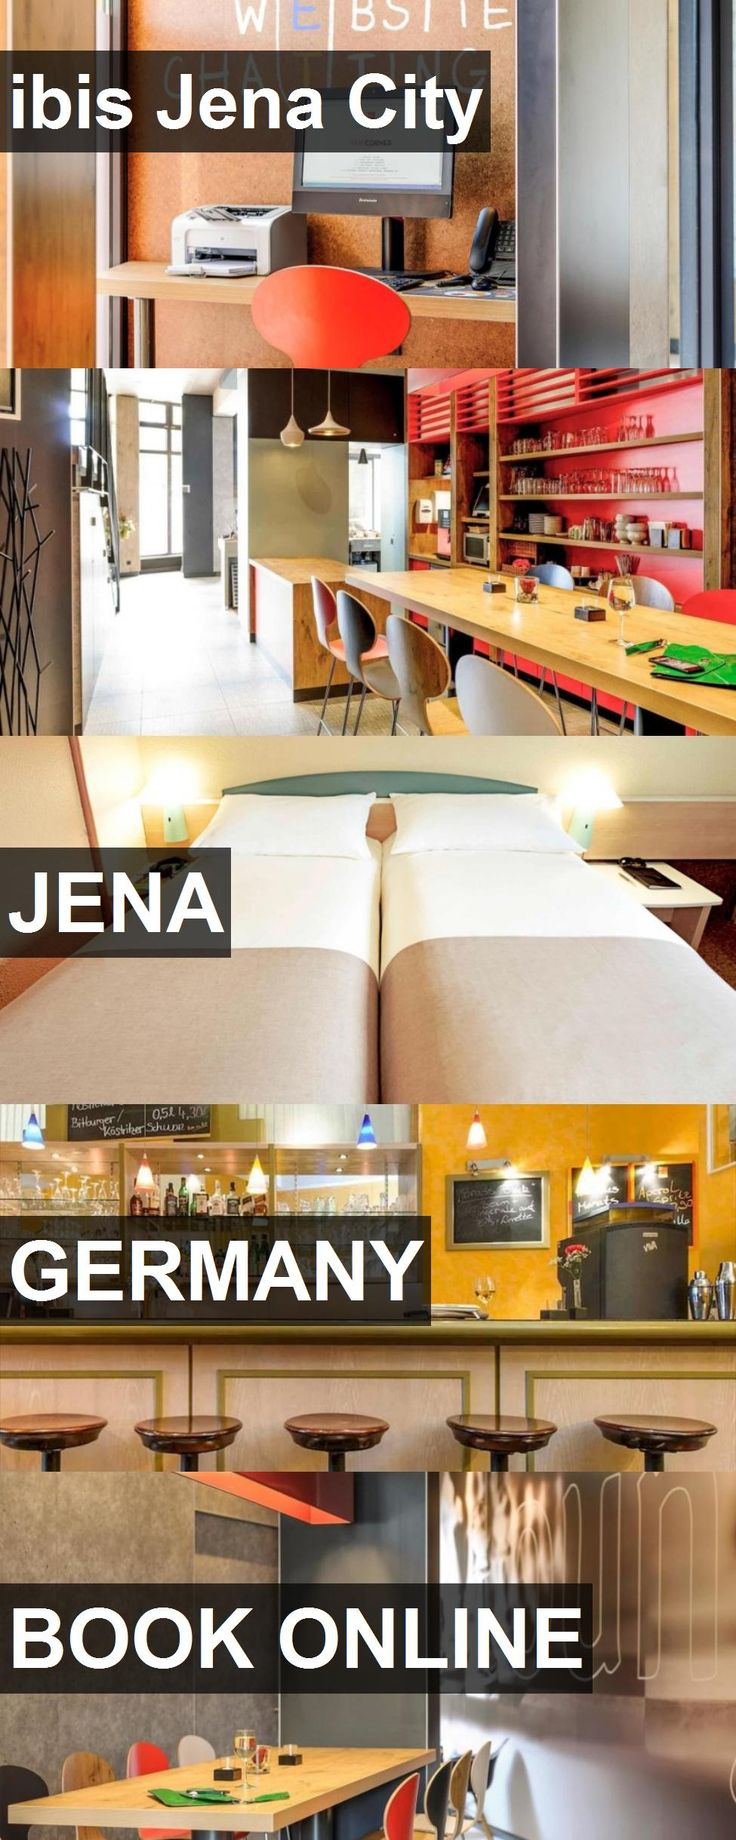 Hotel ibis Jena City in Jena, Germany. For more information, photos, reviews and best prices please follow the link. #Germany #Jena #ibisJenaCity #hotel #travel #vacation